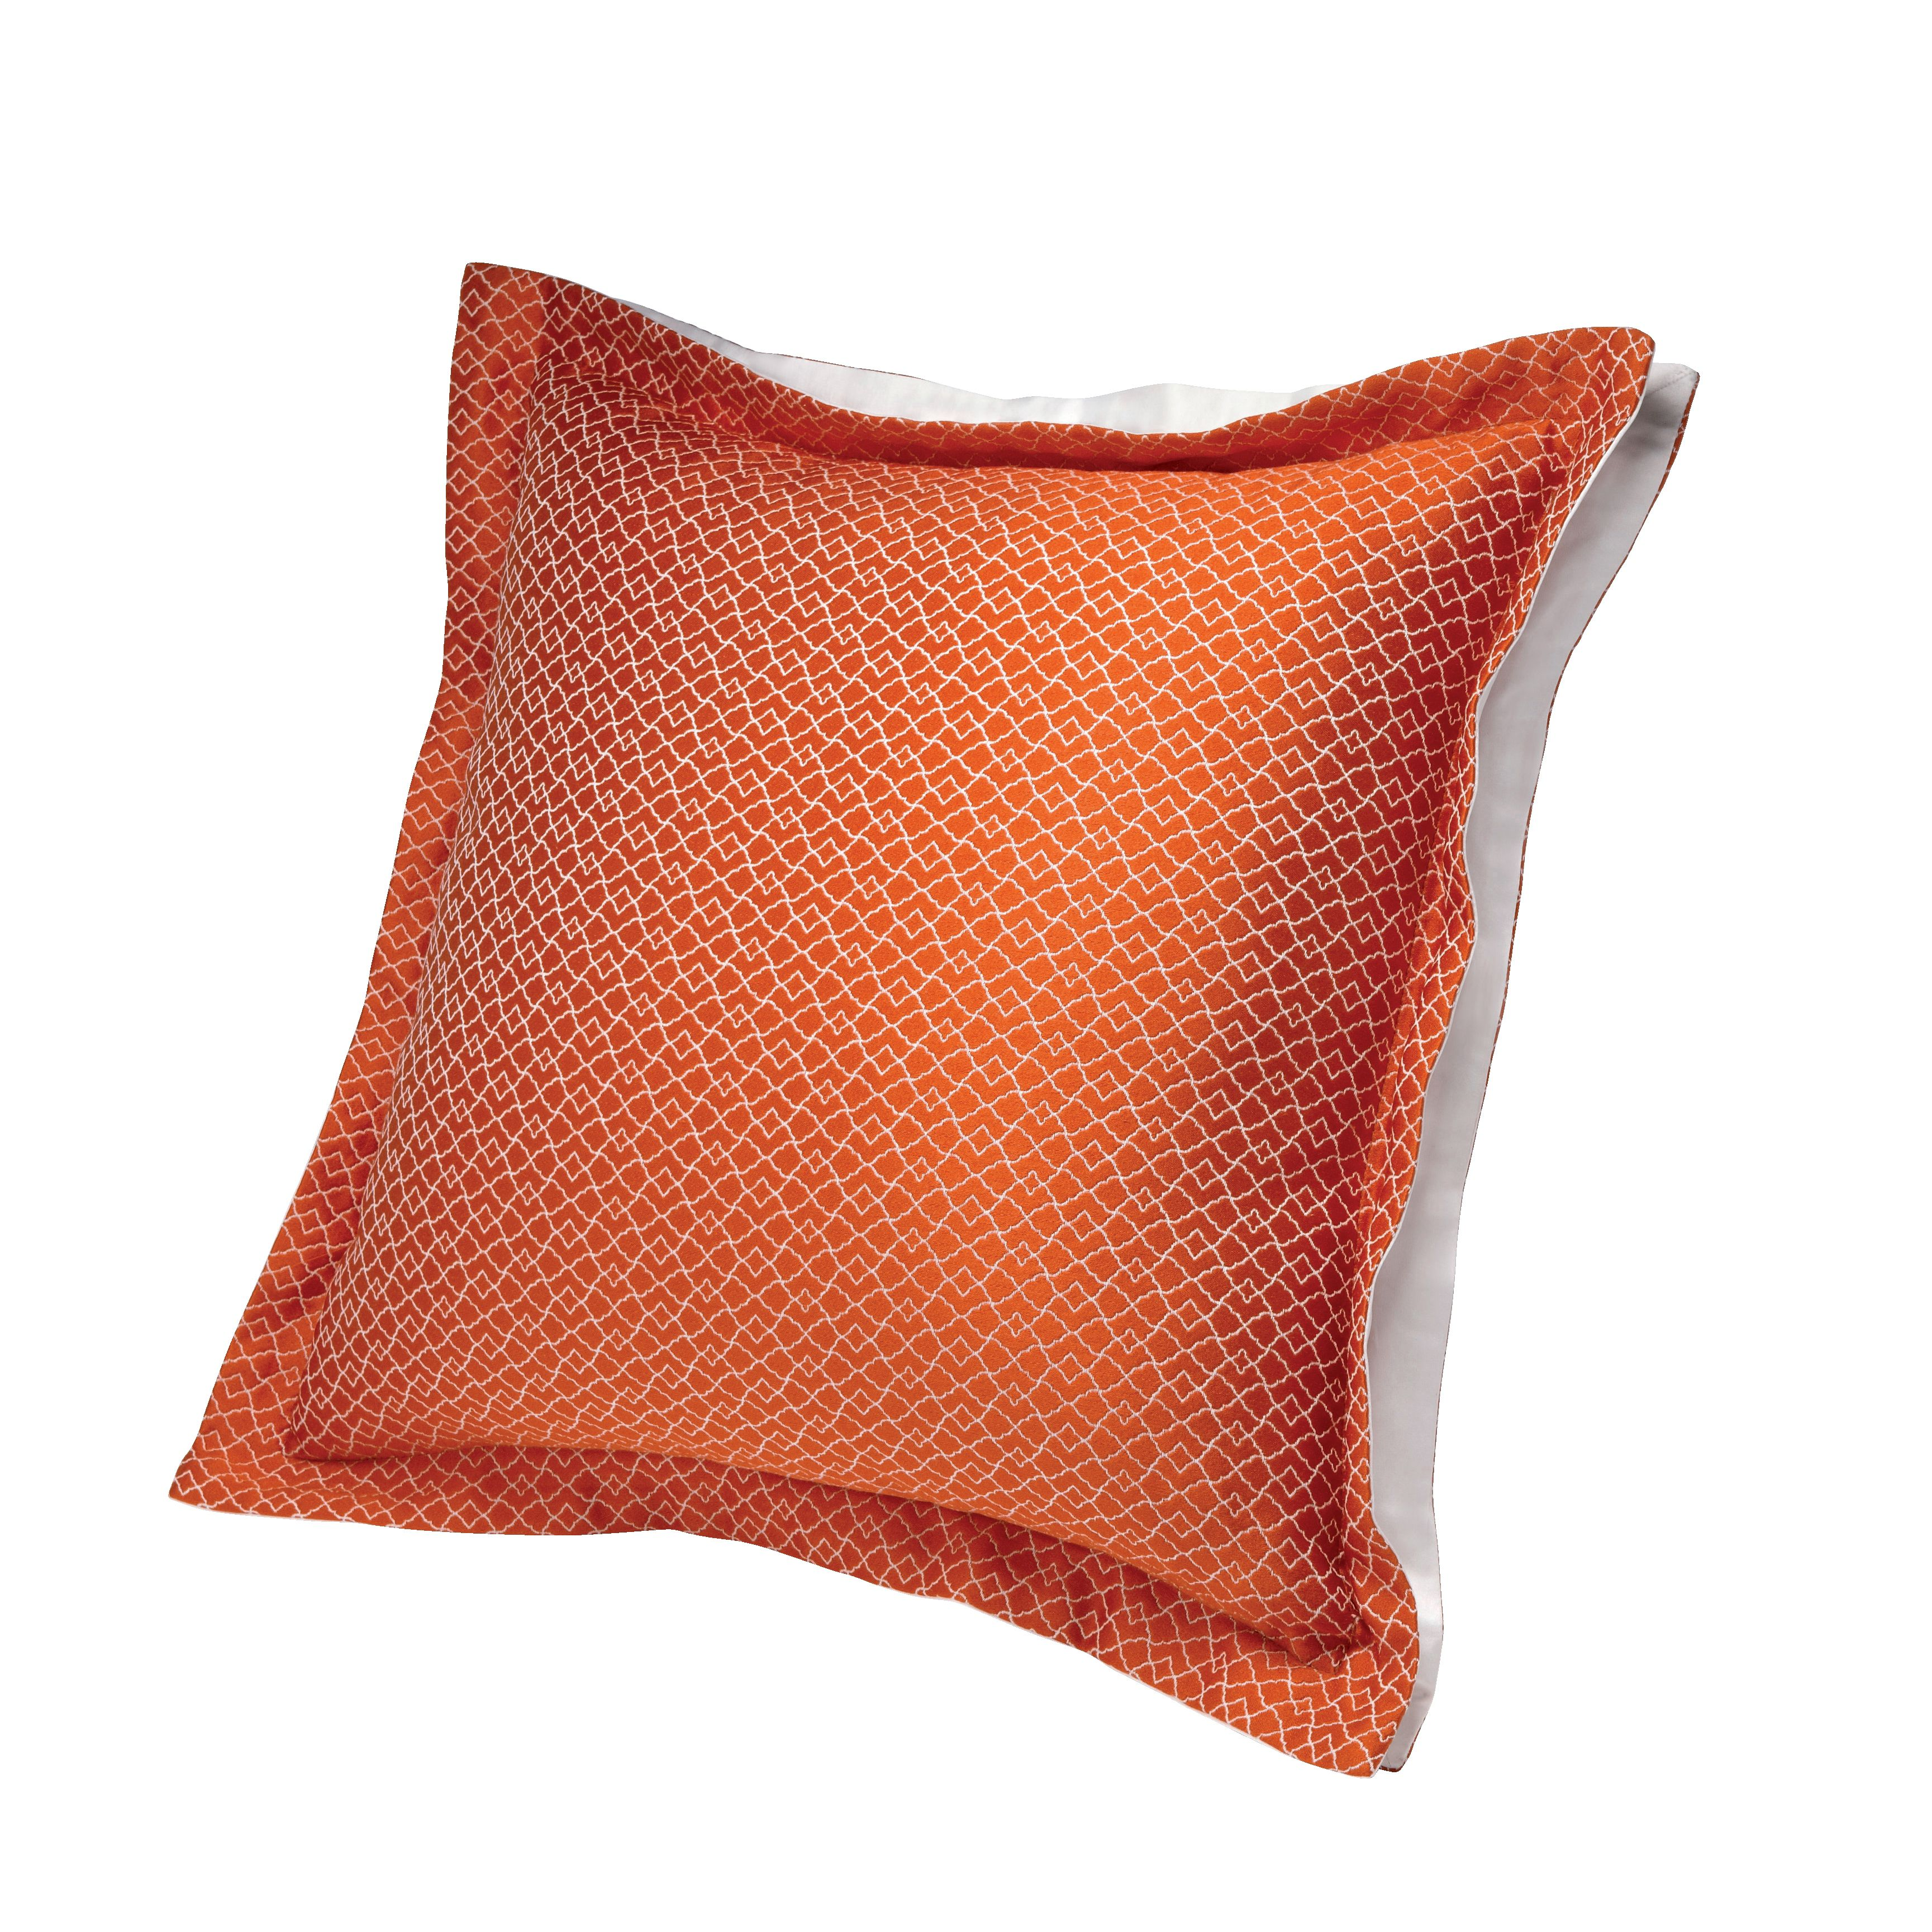 Jali safran cushion coverov sqaure